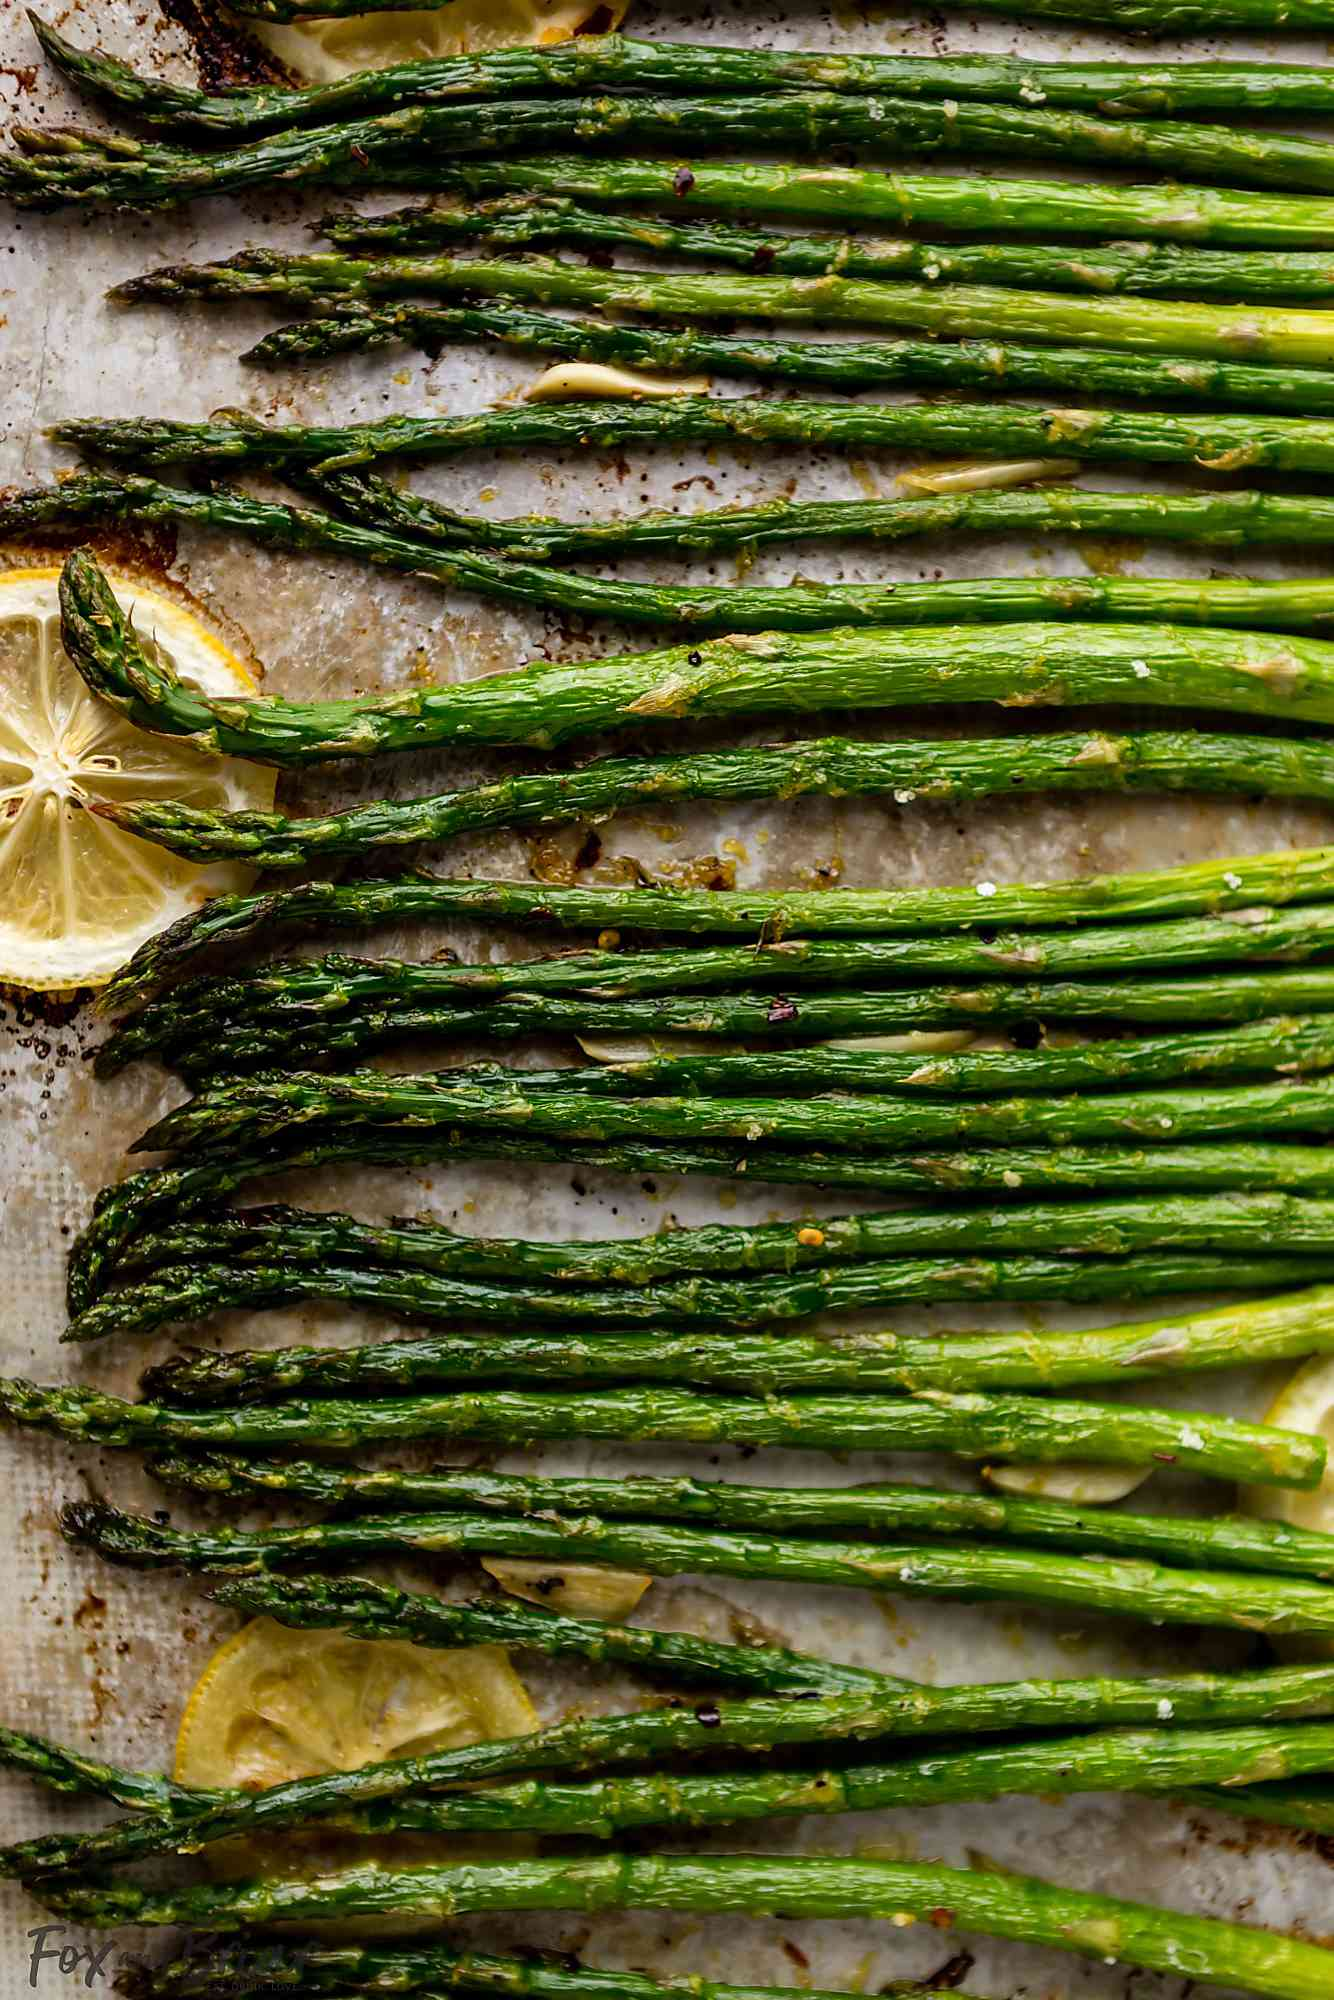 Oven roasted asparagus with lemon slices